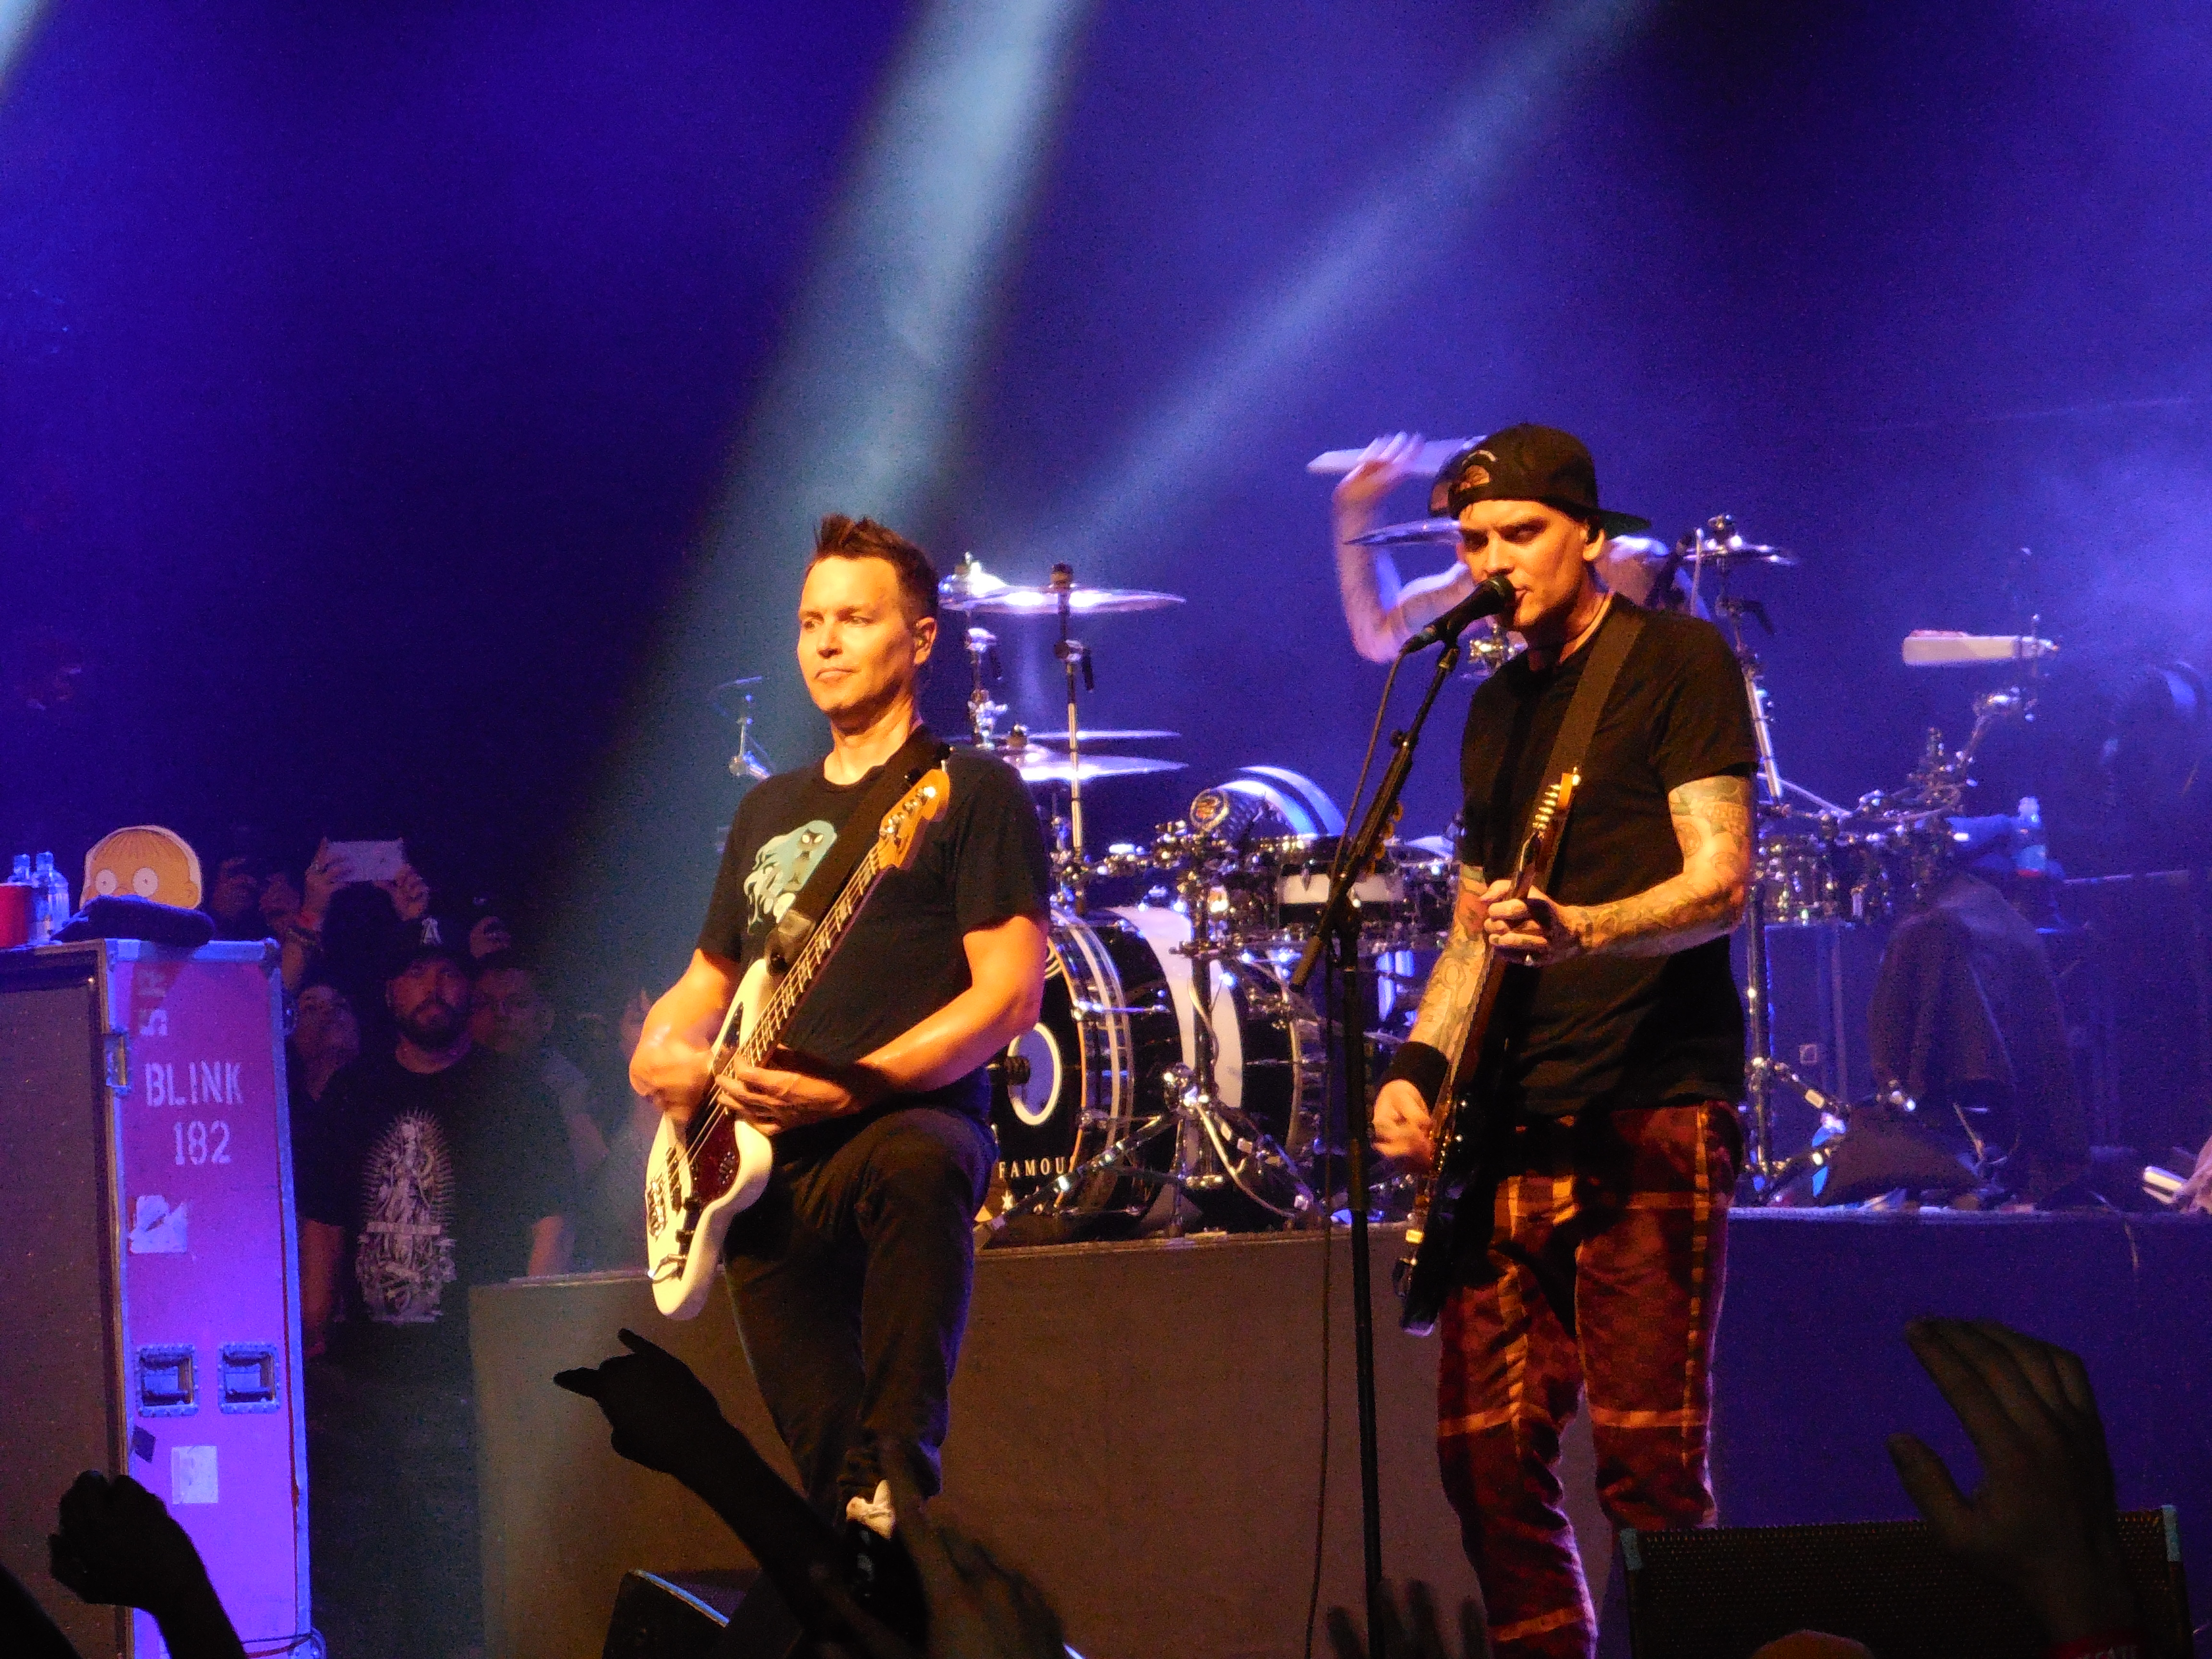 Taking A Look At Blink 182 S Average Setlist For 2016 Summer Tour